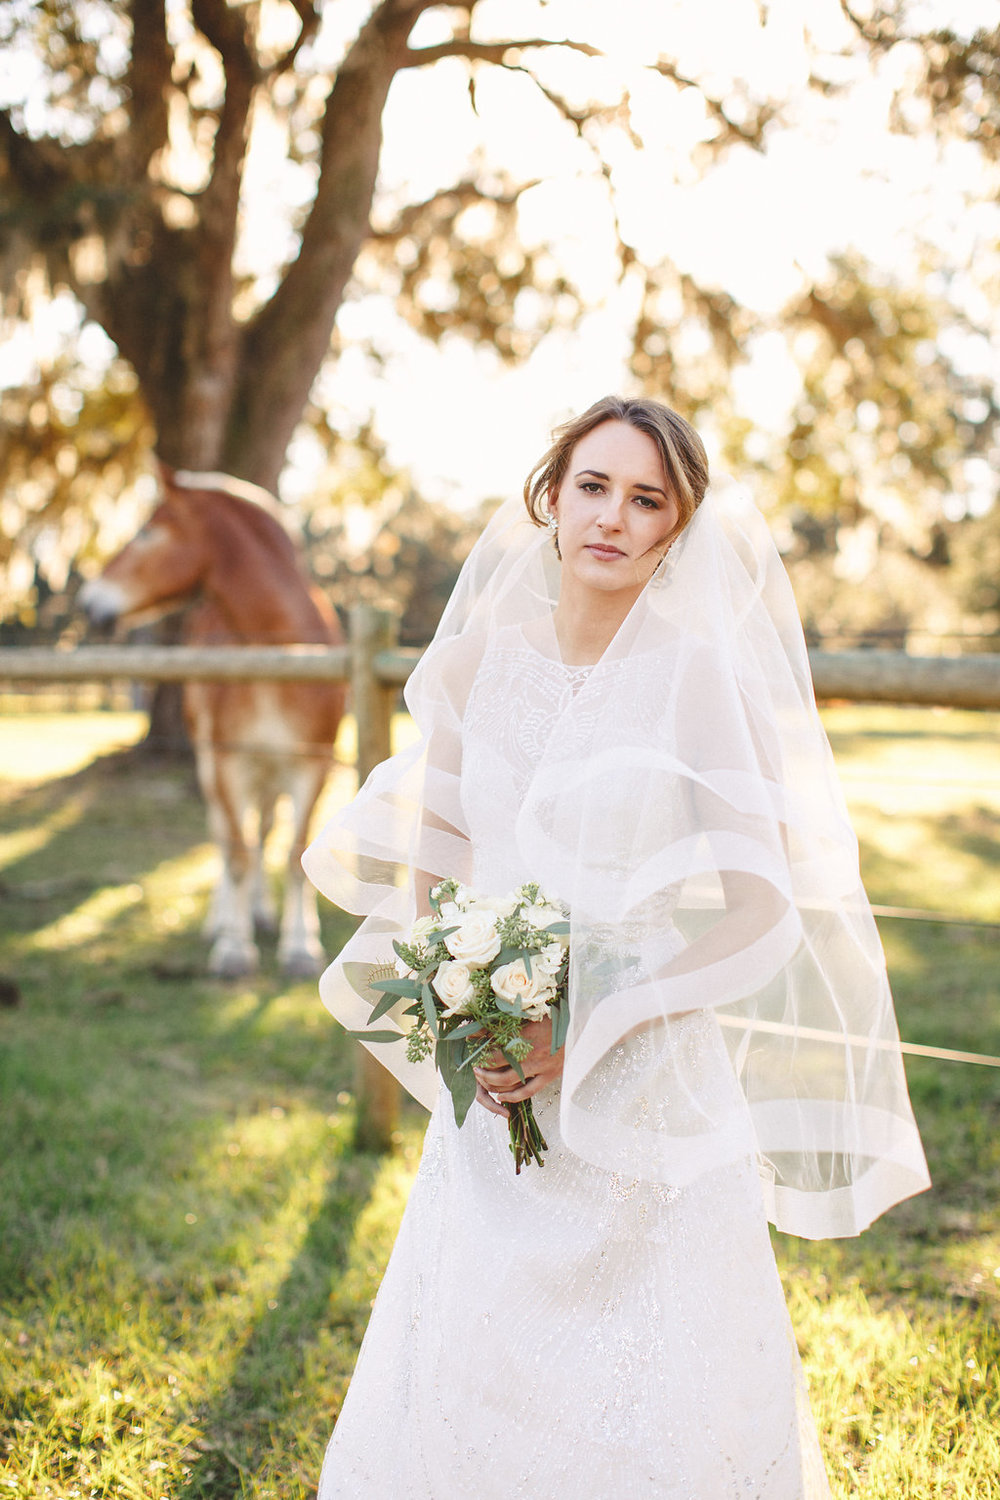 Charleston, SC bride at Sugah Cain Plantation  //  on A Lowocountry Wedding Magazine & Blog